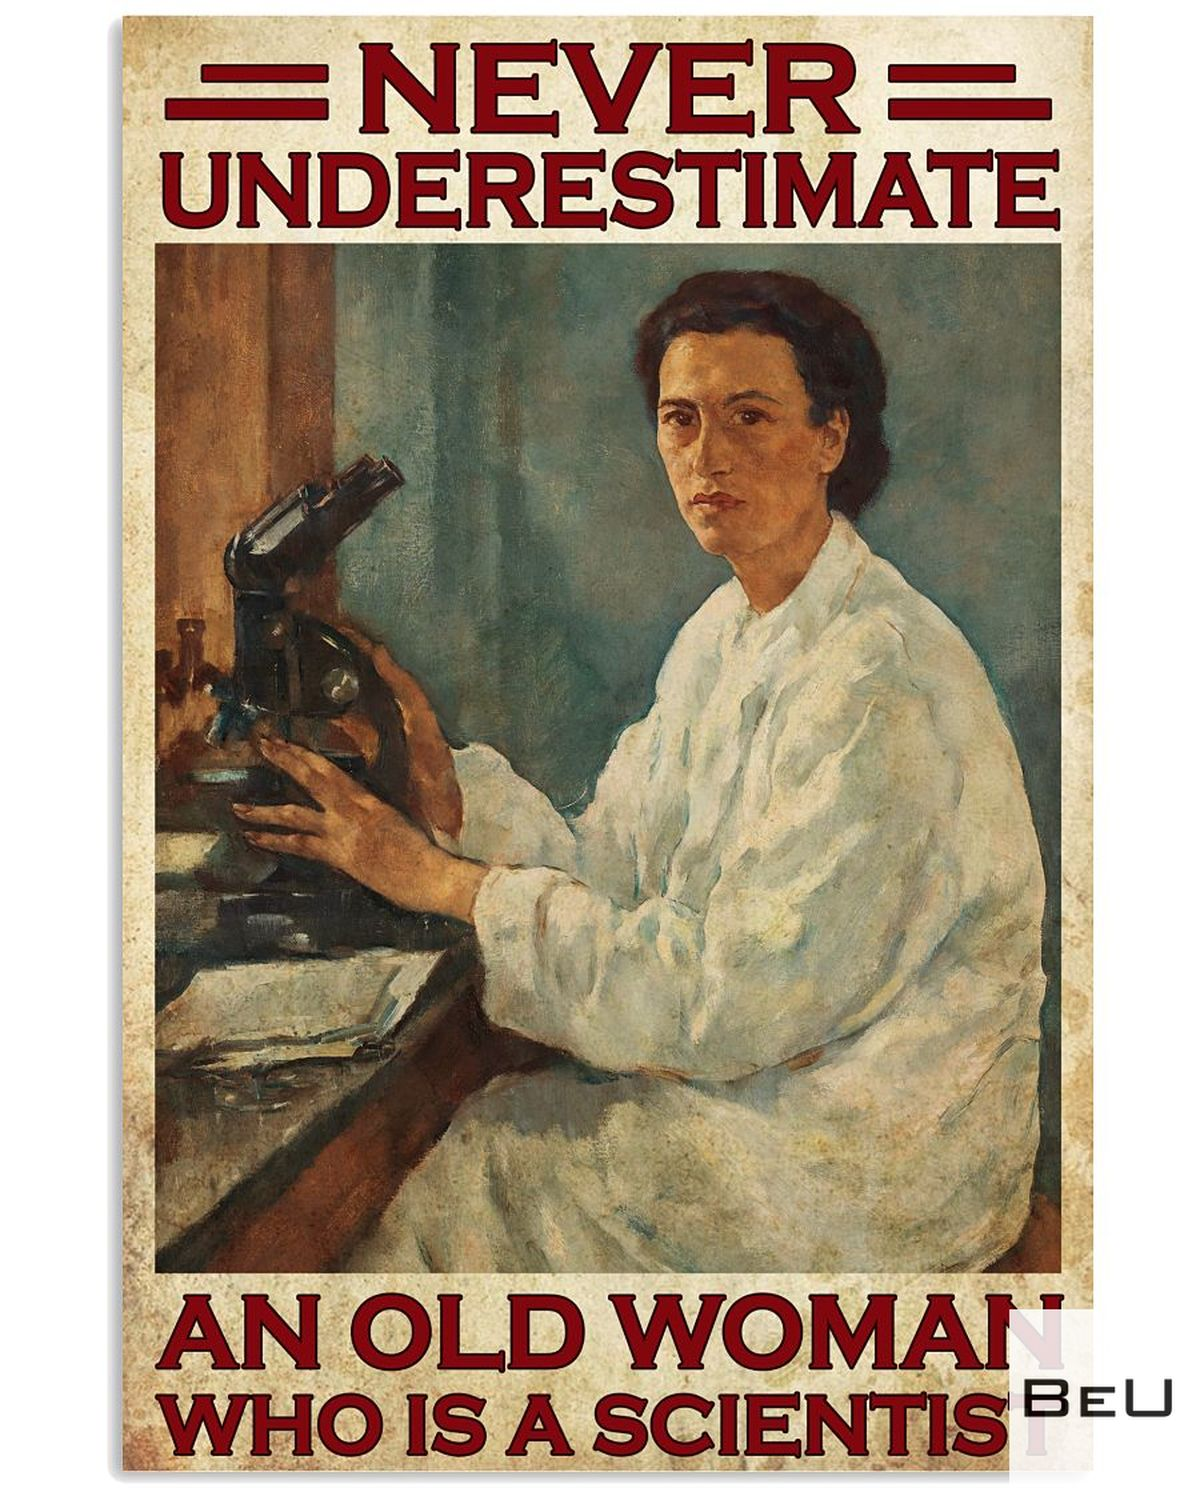 Never Underestimate An Old Scientist Woman Poster